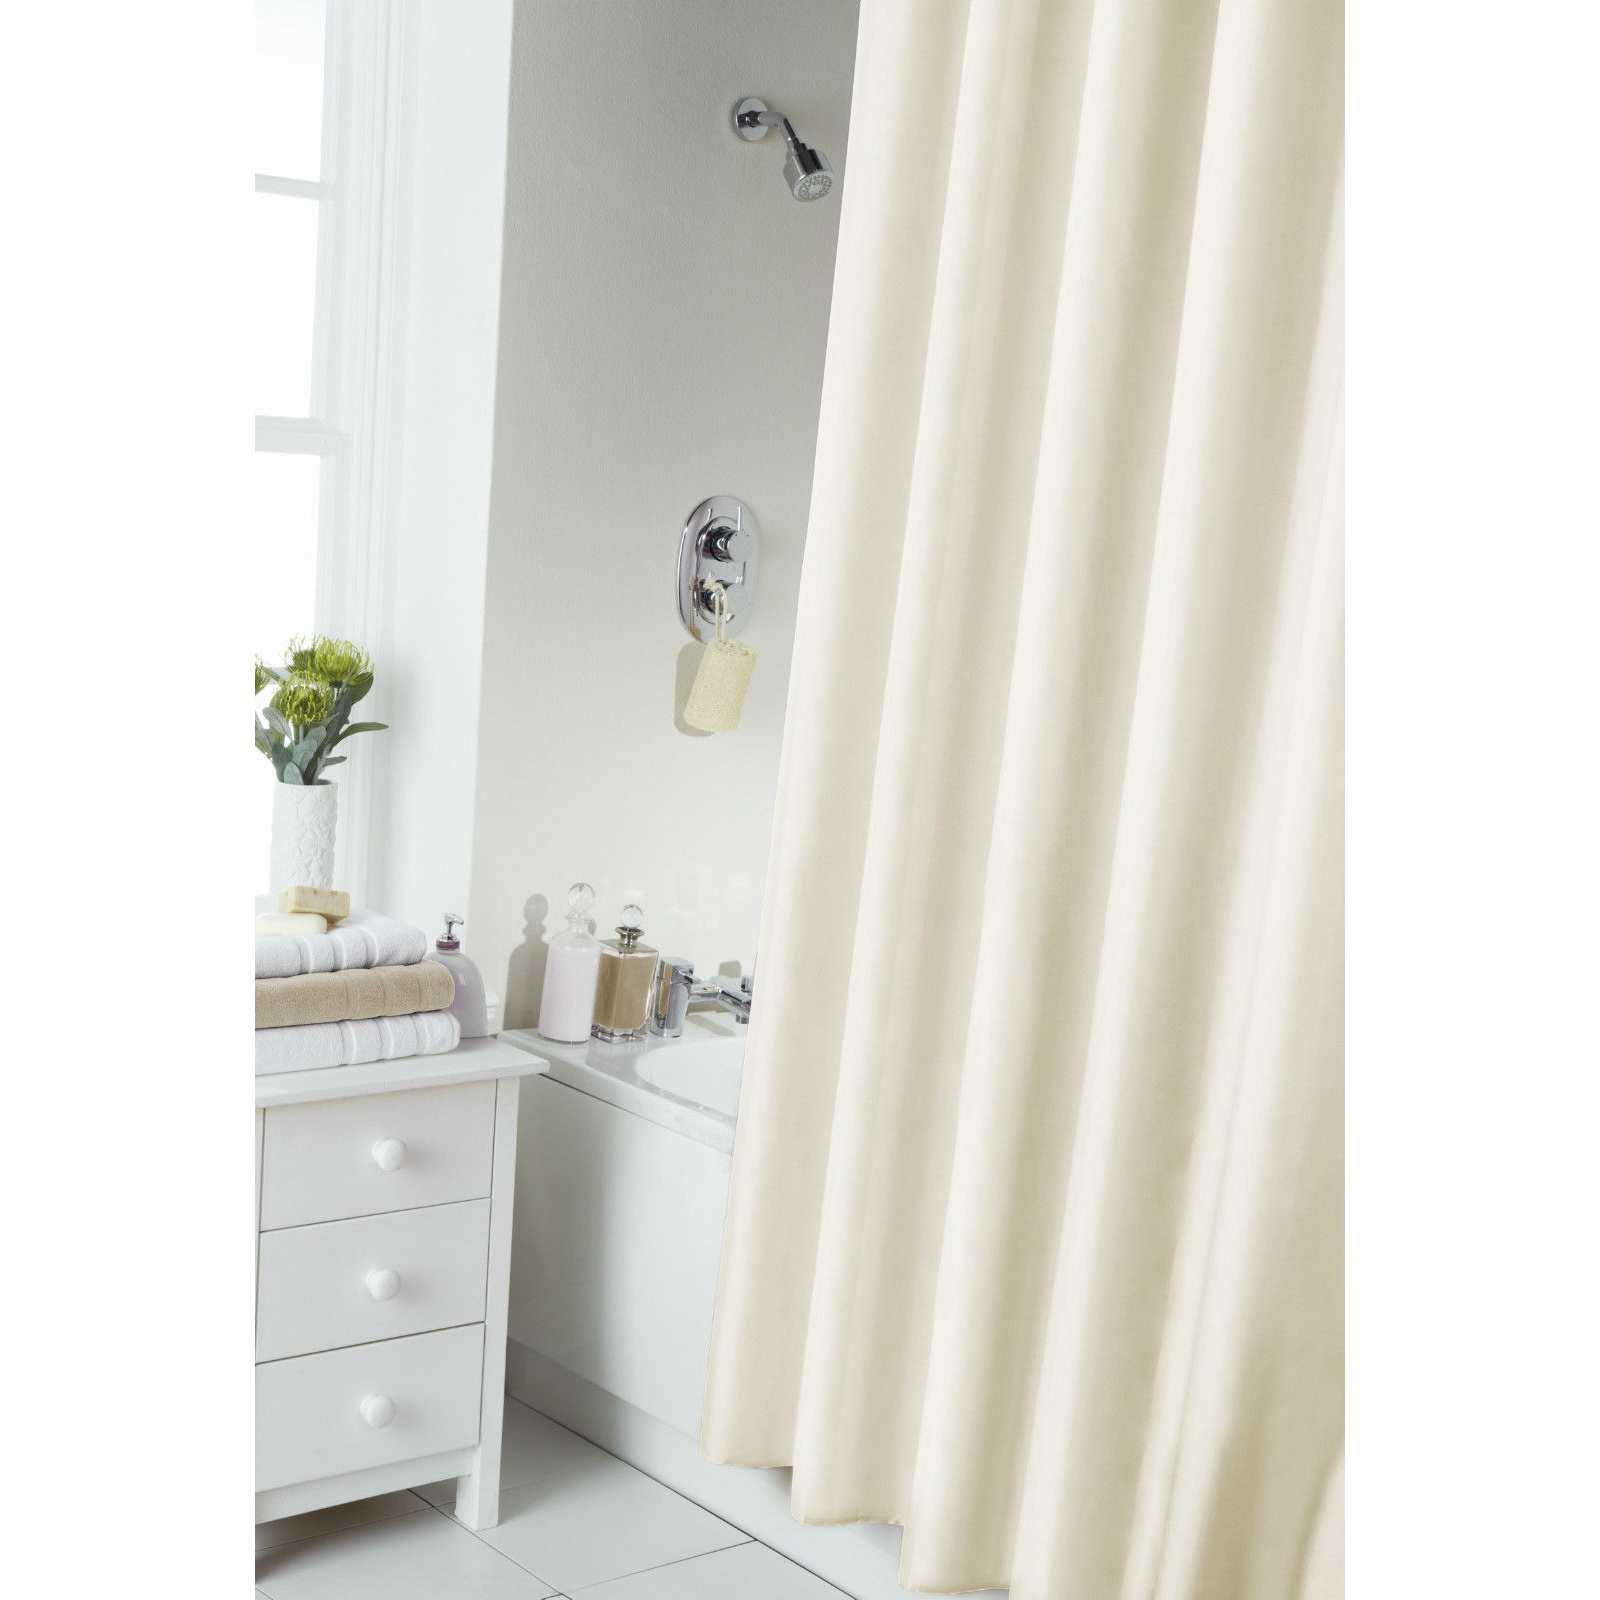 plain shower curtain with rail rings ebay. Black Bedroom Furniture Sets. Home Design Ideas